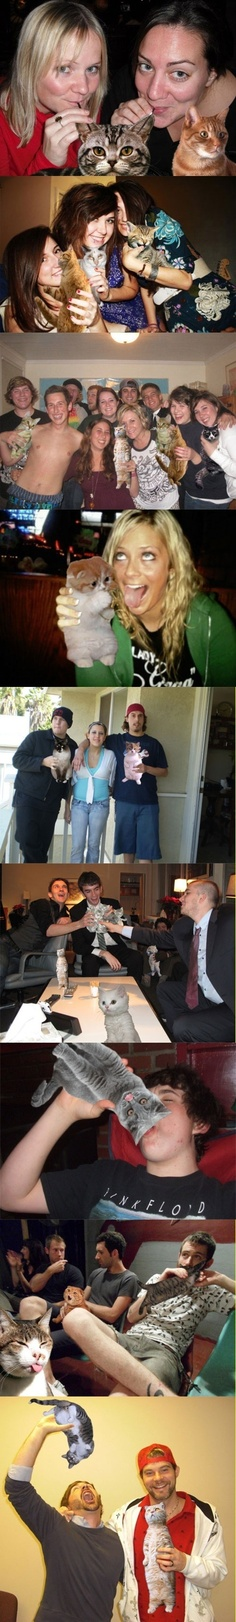 How to hide alcohol in Facebook photos - Imgur